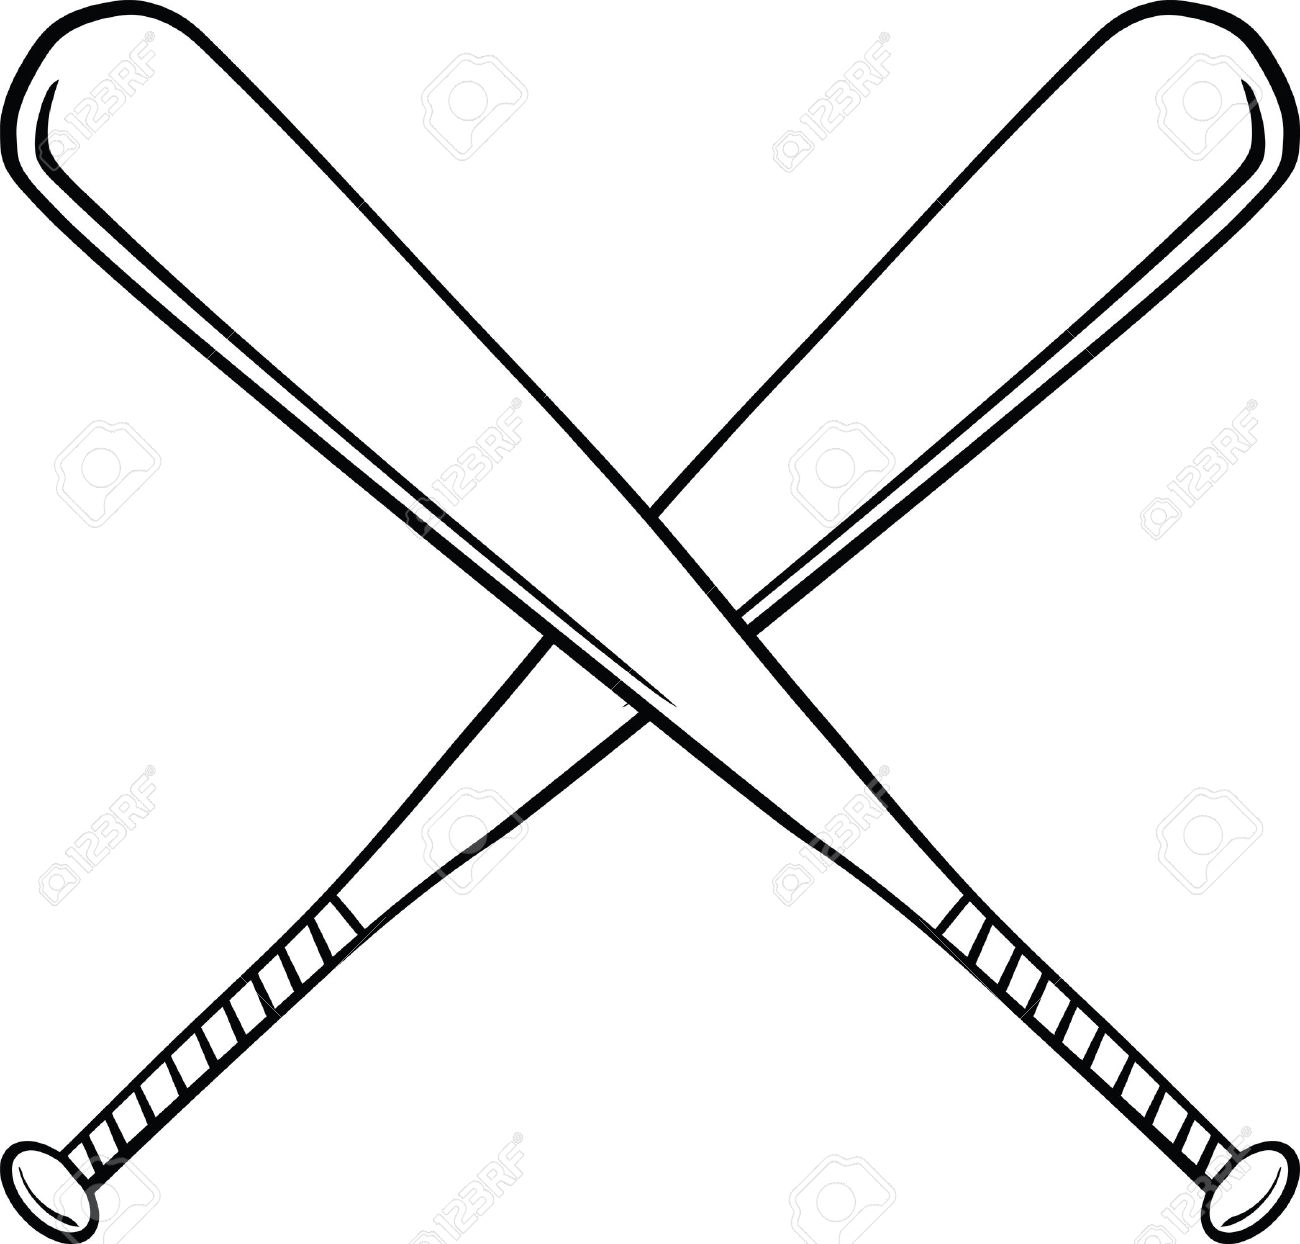 1300x1244 Baseball Bat Clipart Hard Object